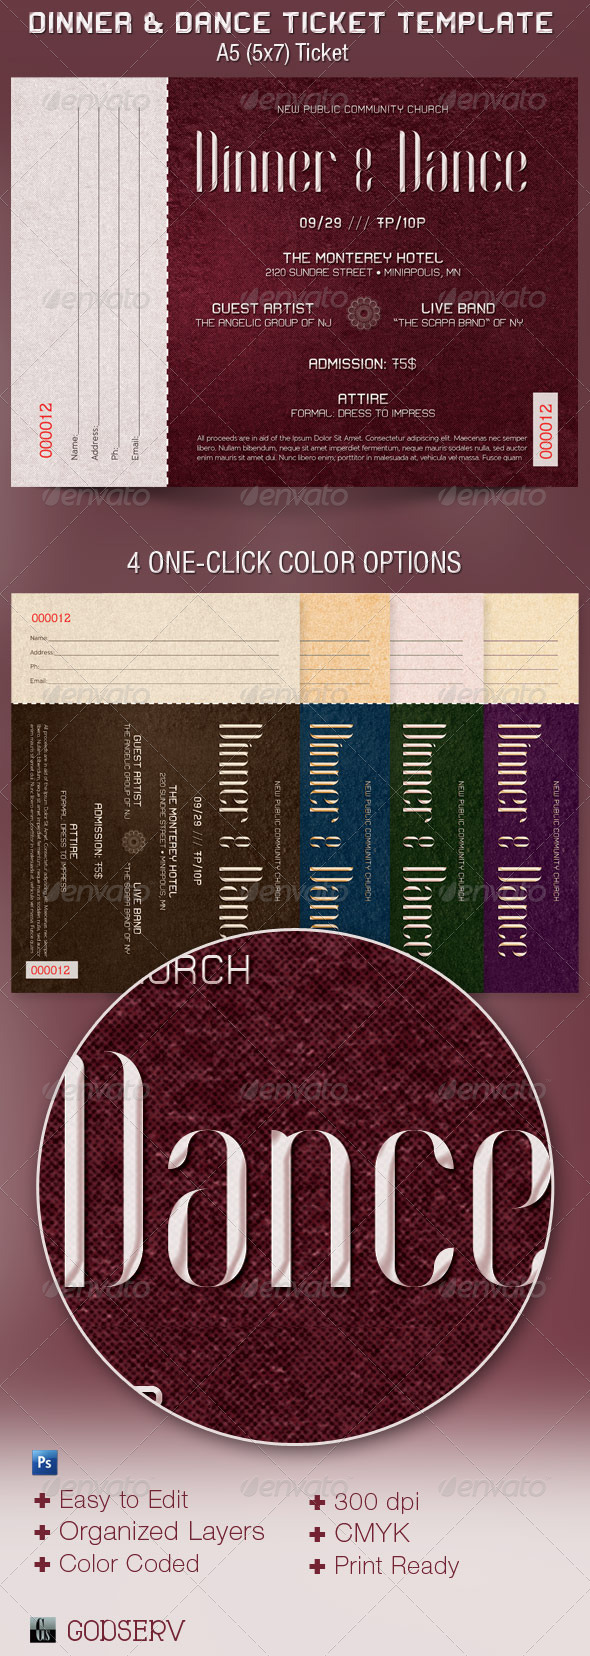 dinner and dance ticket template graphicmule. Black Bedroom Furniture Sets. Home Design Ideas